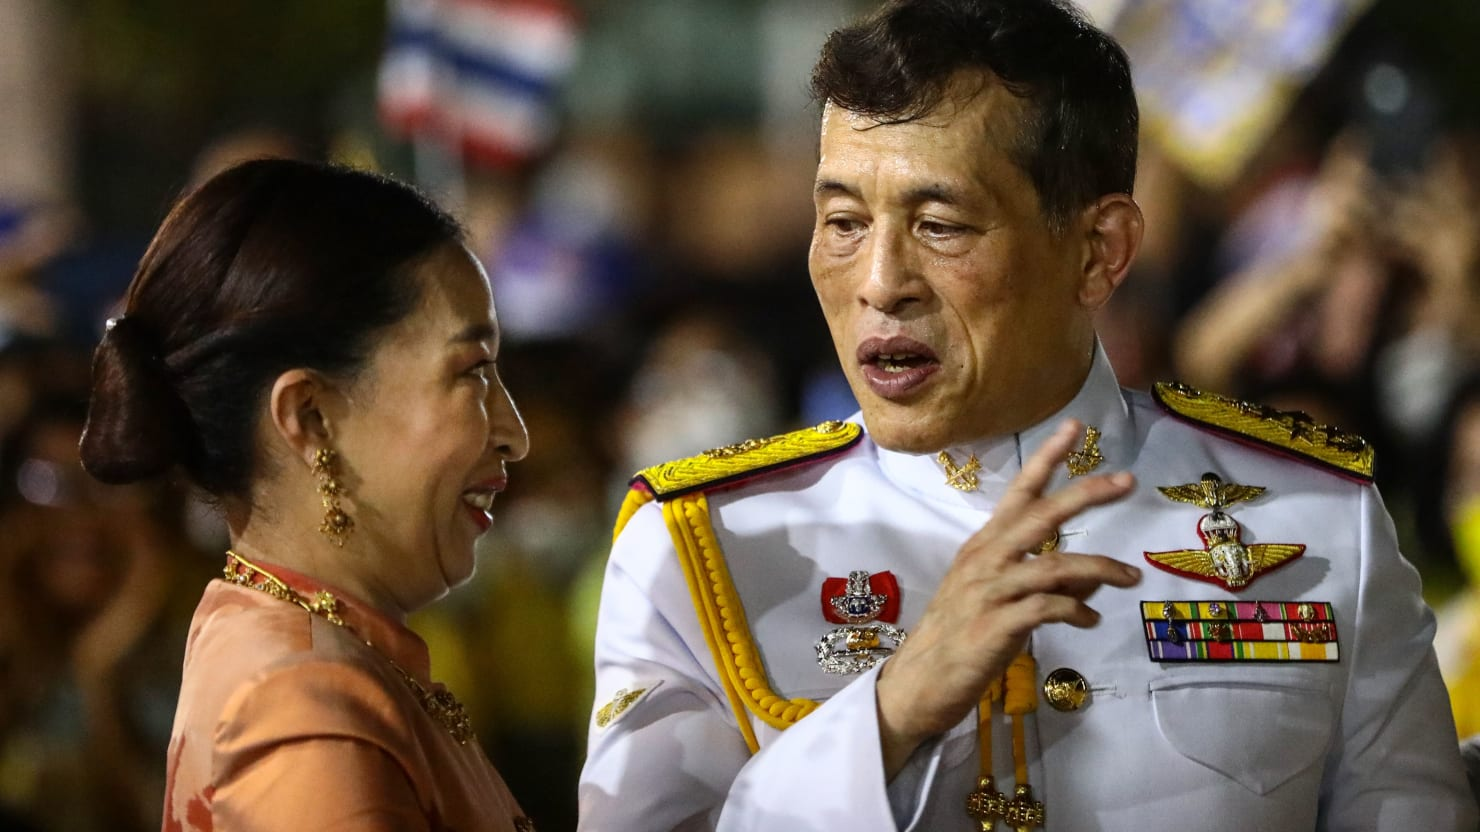 King of Thailand Reportedly Accused of Breaking Sister's Ankles After She Questions Plan to Name Second Queen